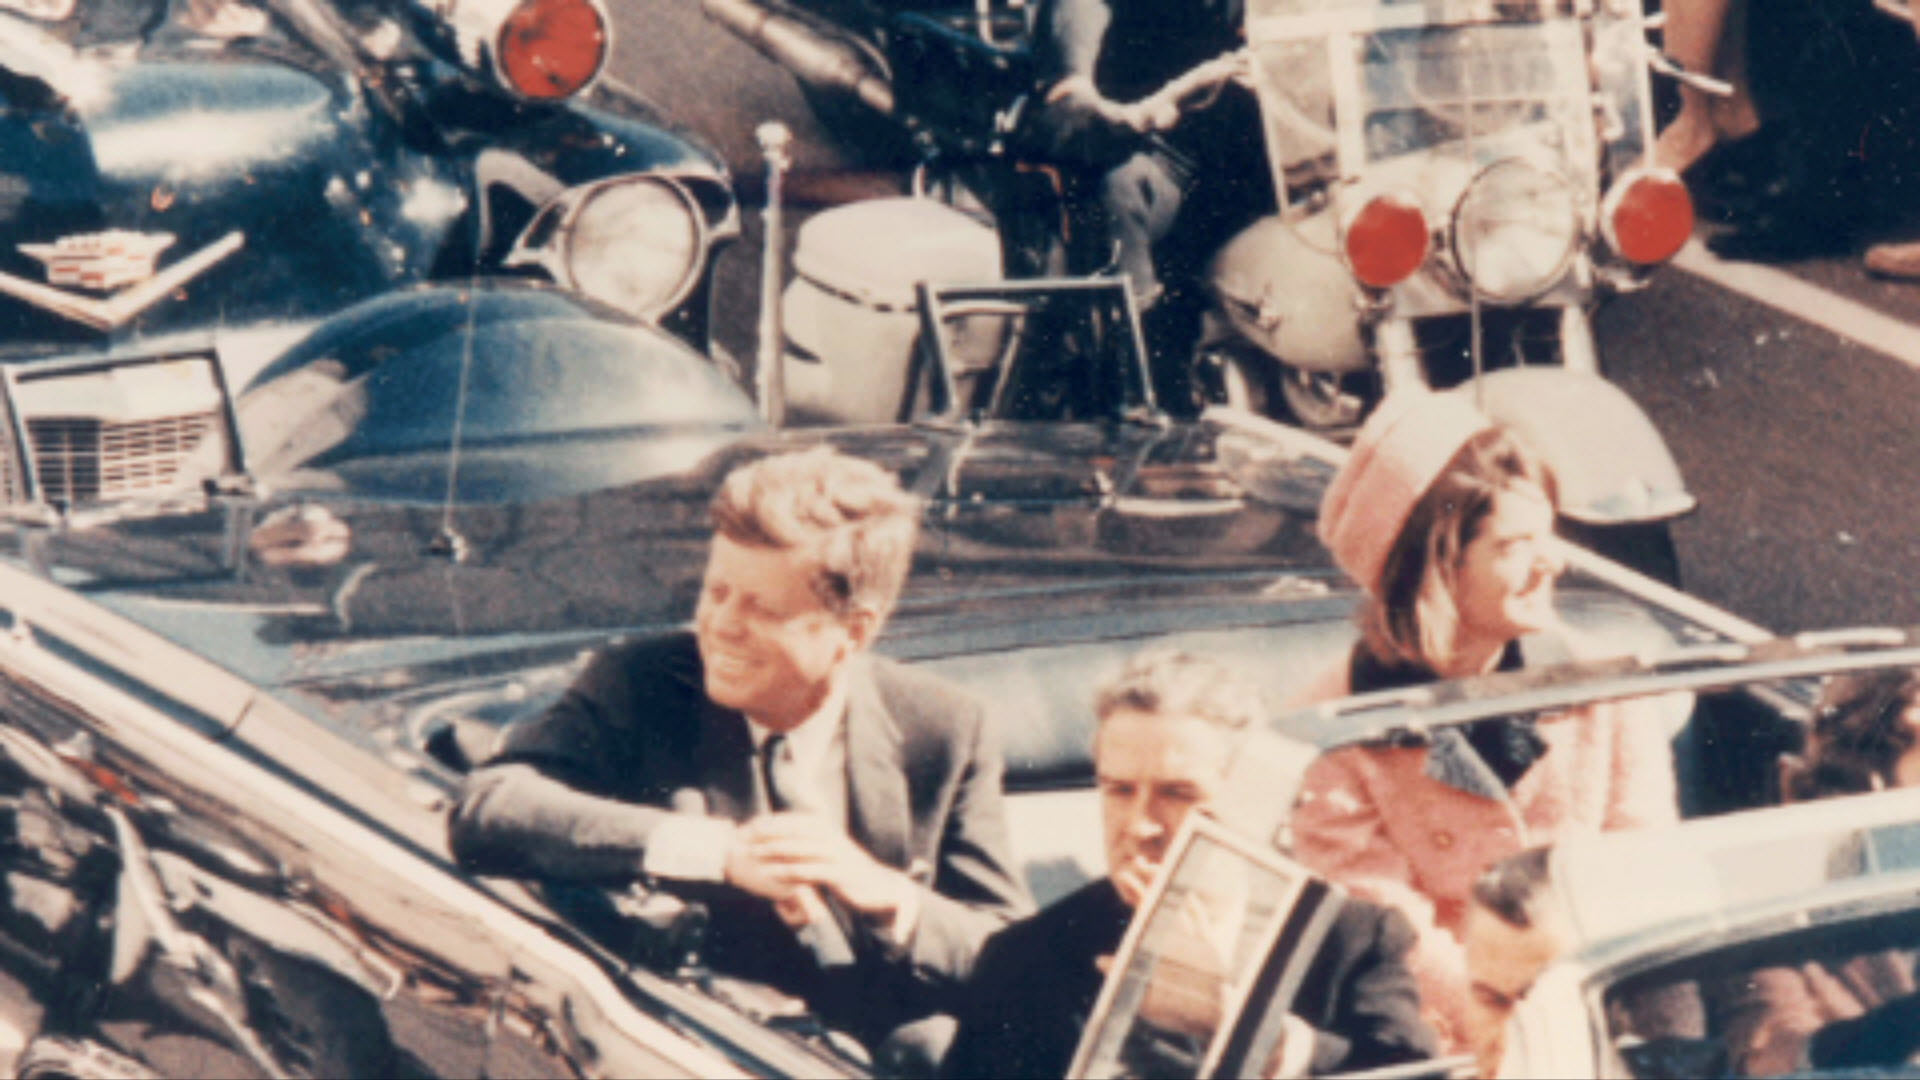 who killed jfk President john f kennedy was killed on nov 22, 1963, by lee harvey oswald  conspiracy theorists believe there is more to the story, but the.